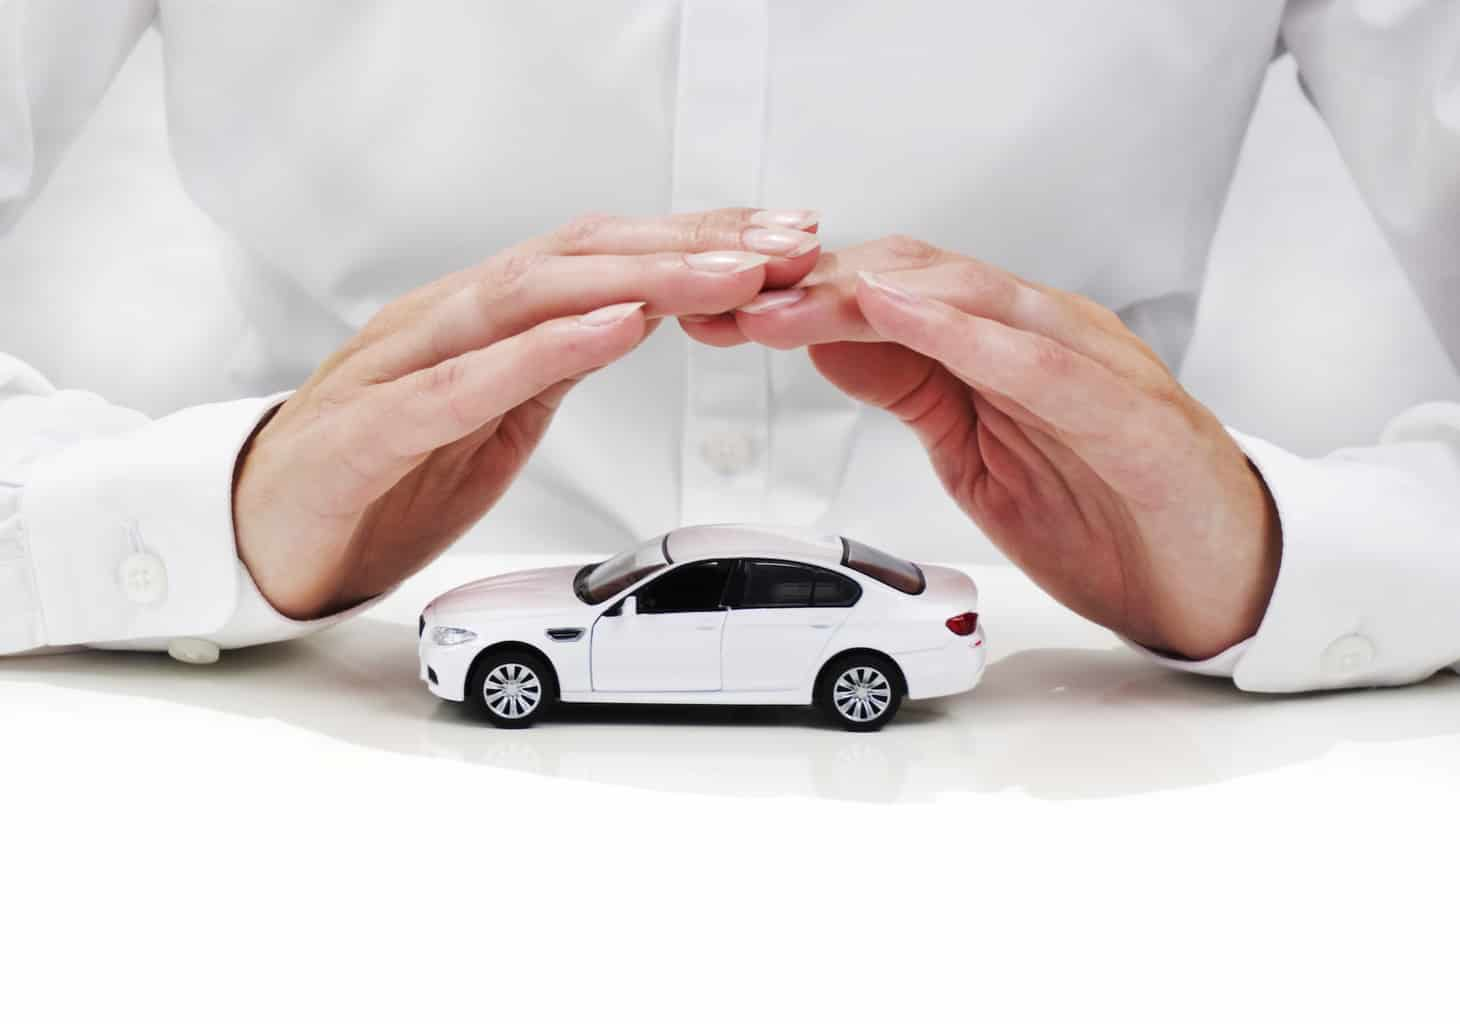 Do I have to have a minimum insurance?